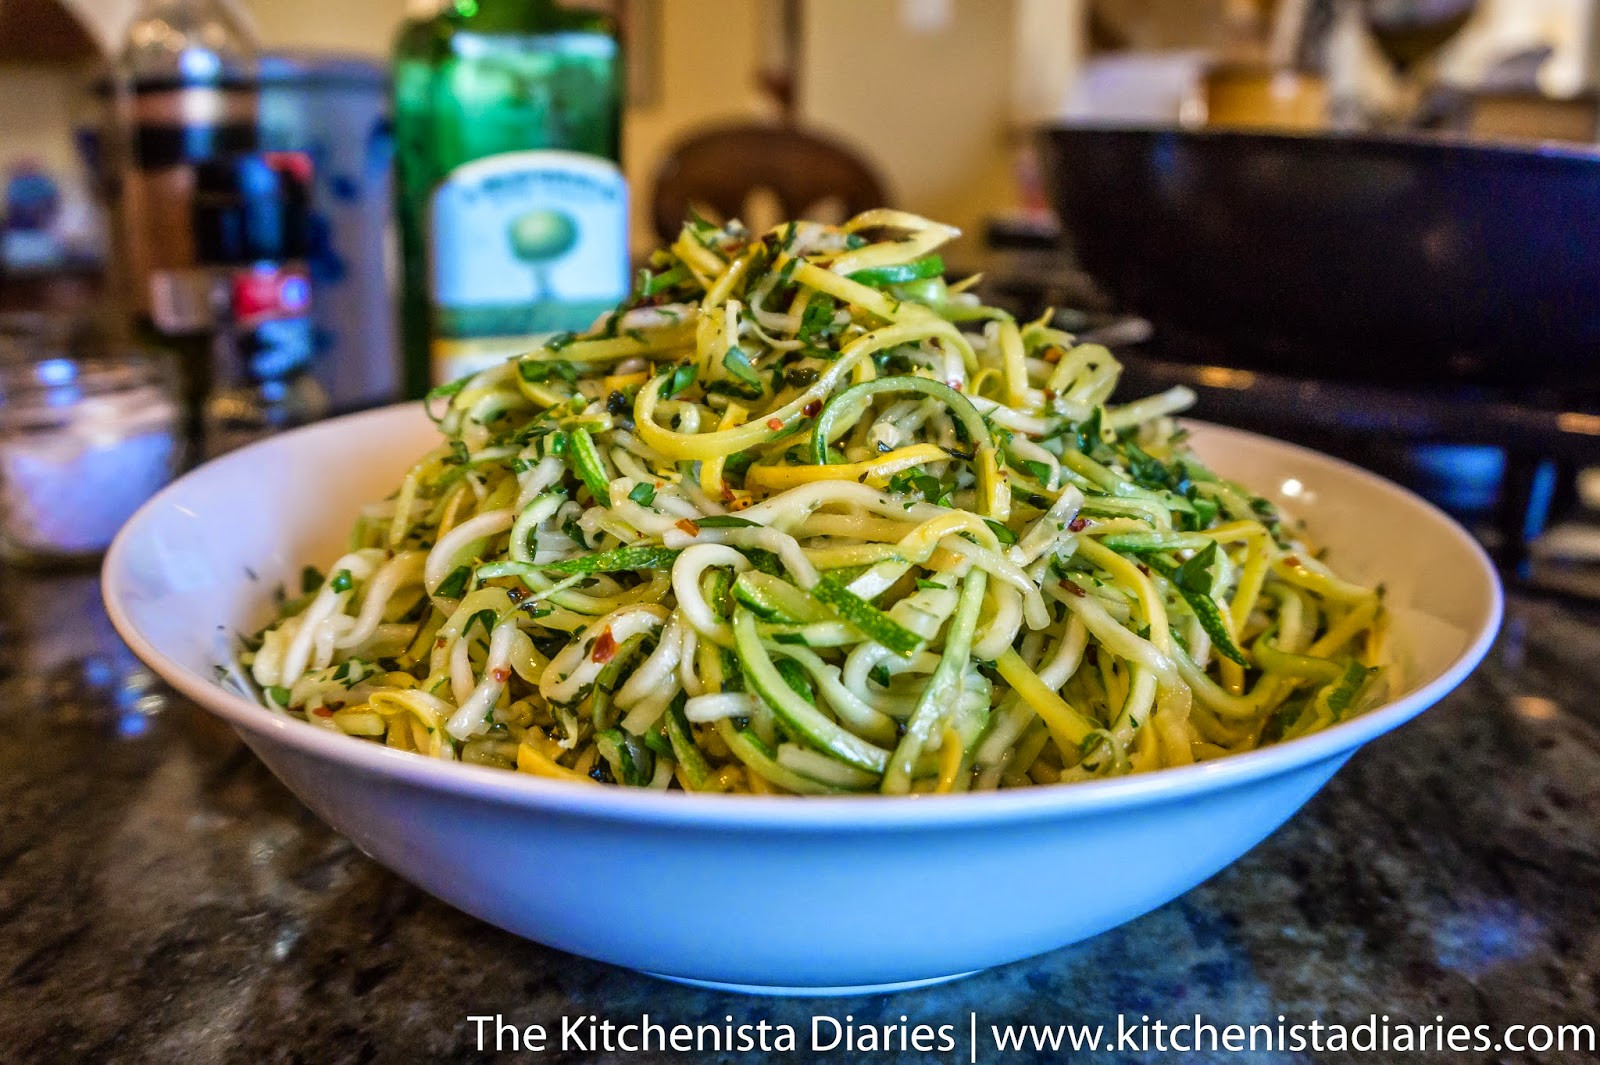 Summer Squash Noodles Recipes  Zucchini & Summer Squash Noodles with Garlic and Mint